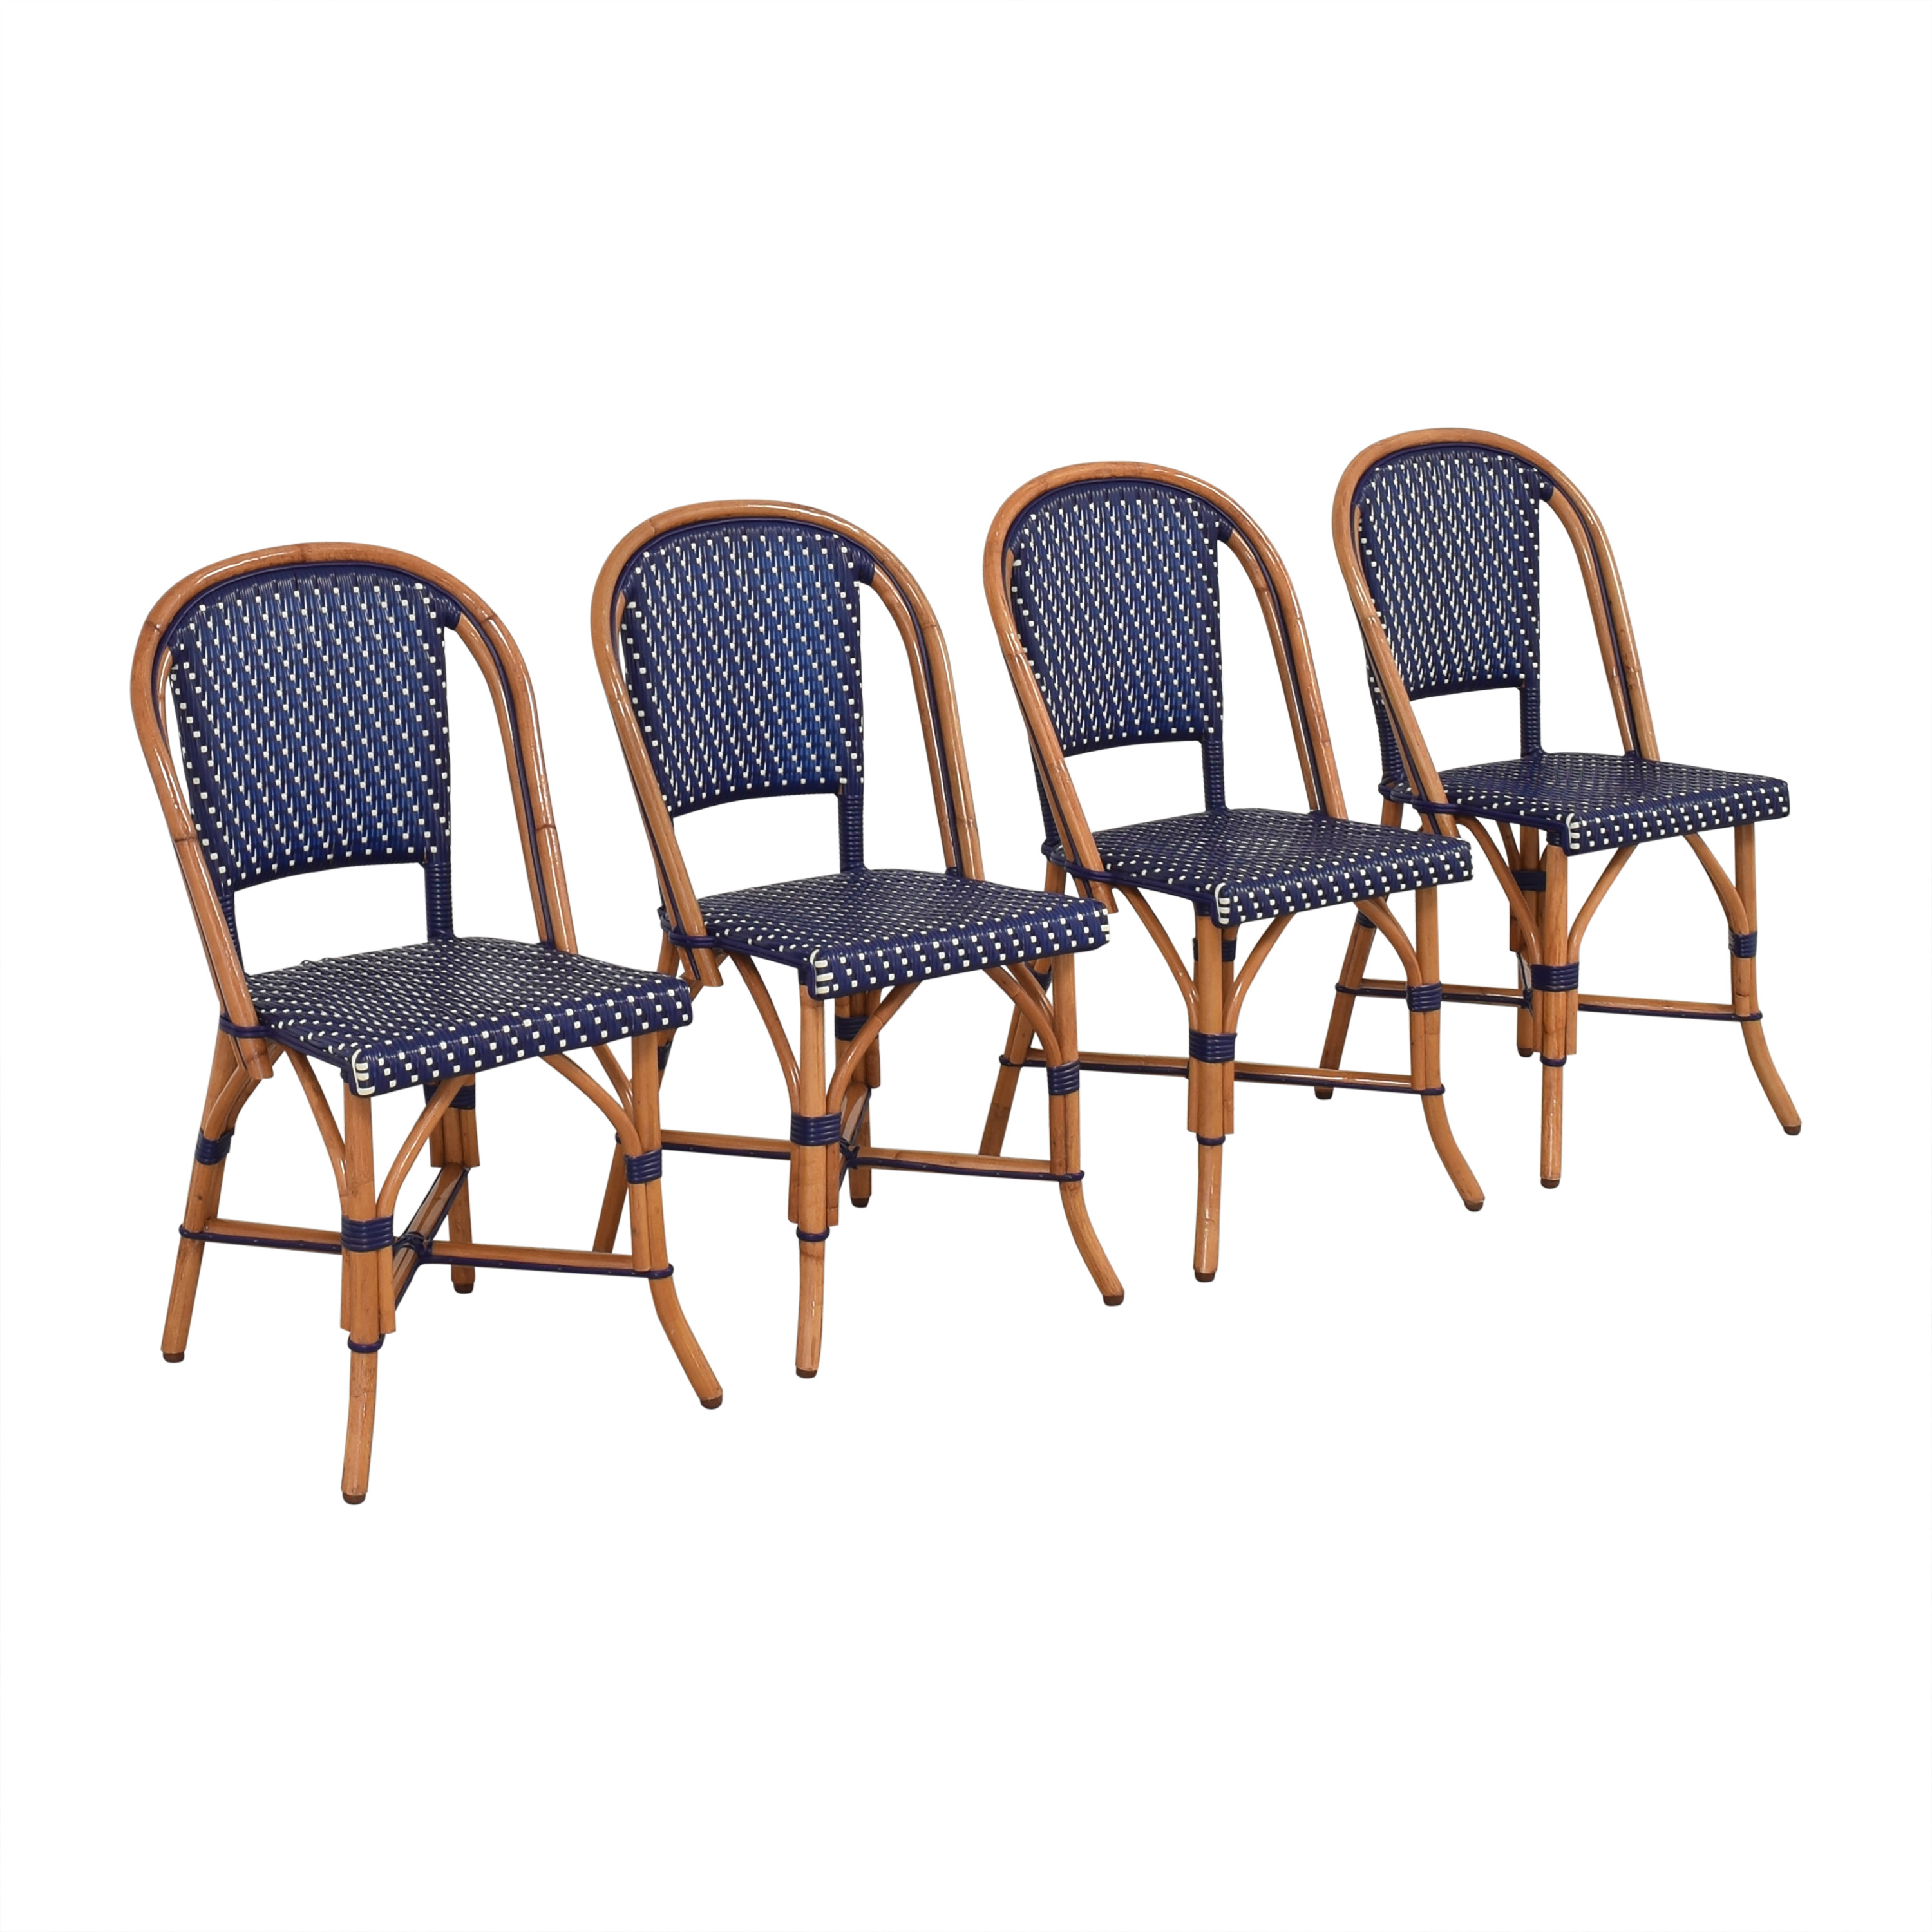 French-Style Bistro Chairs Dining Chairs